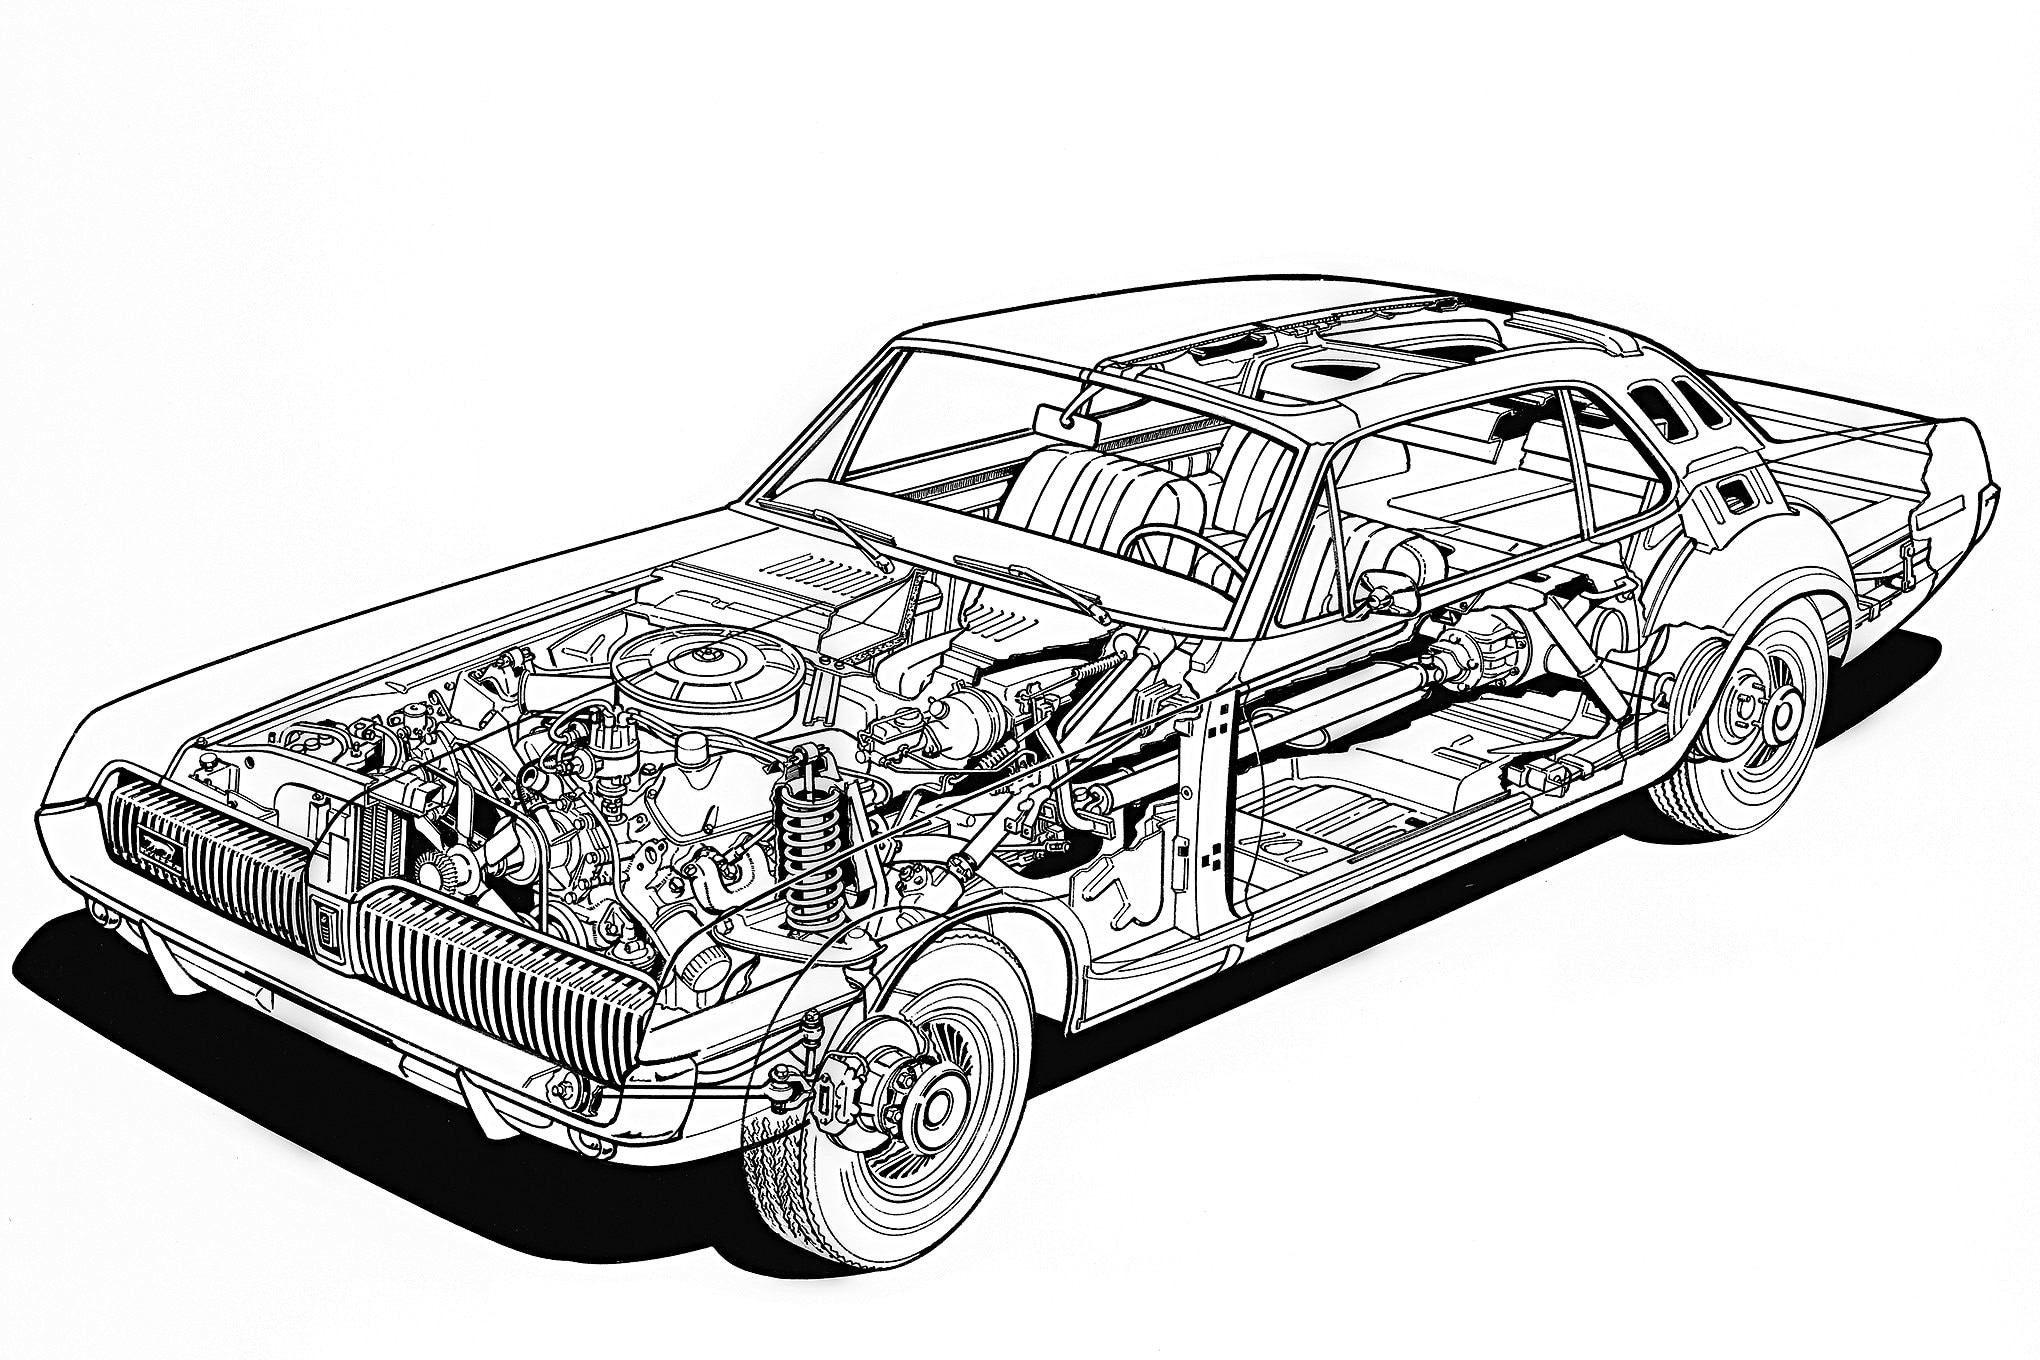 Mercury Cougar Wiring Diagram Sketch Coloring Page